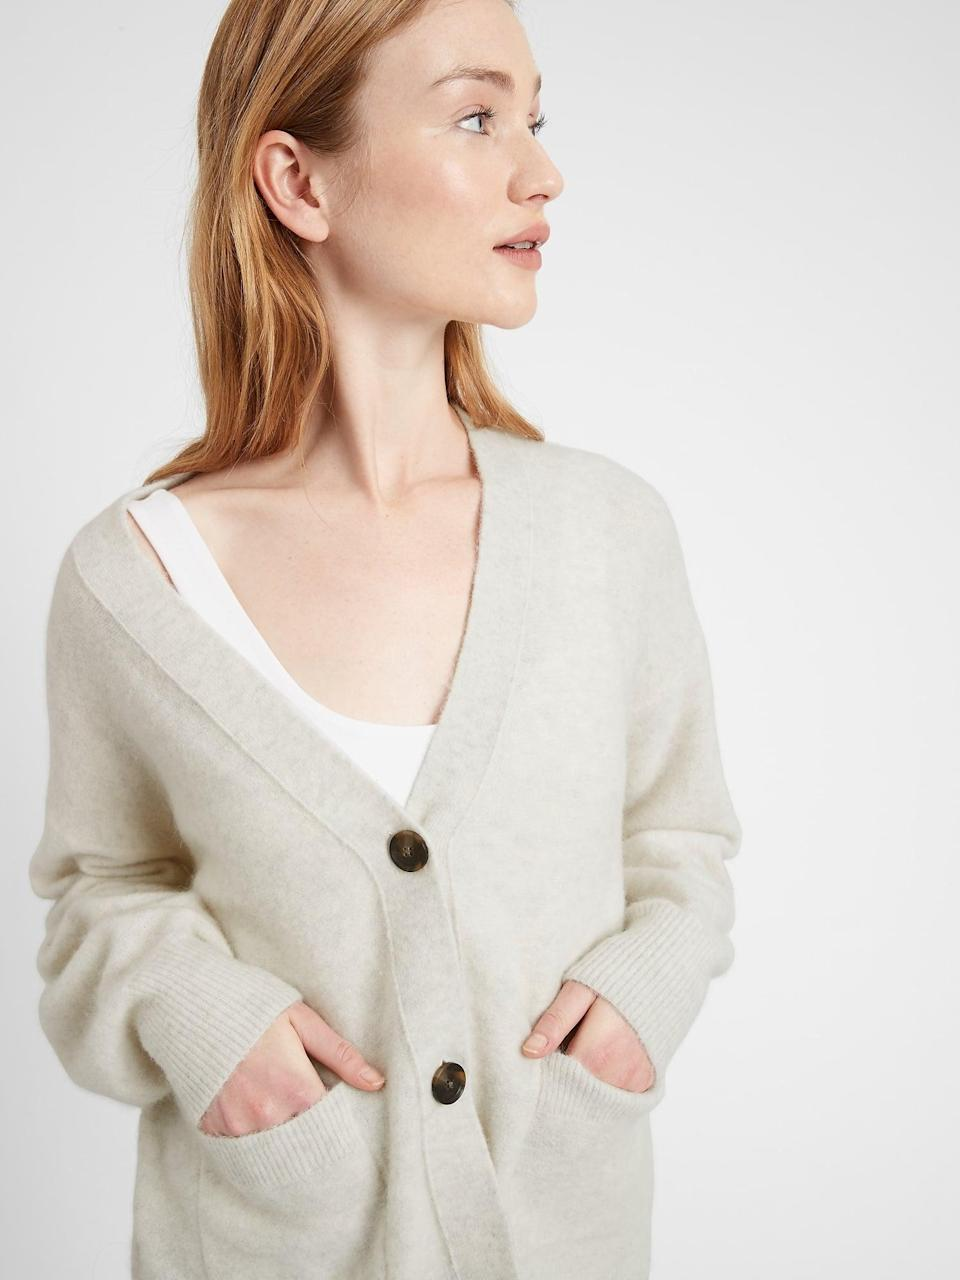 <p>This <span>Oversized Blouson-Sleeve Cardigan Sweater</span> ($88, originally $99) is a must-have for pulling together any cozy fall outfits.</p>